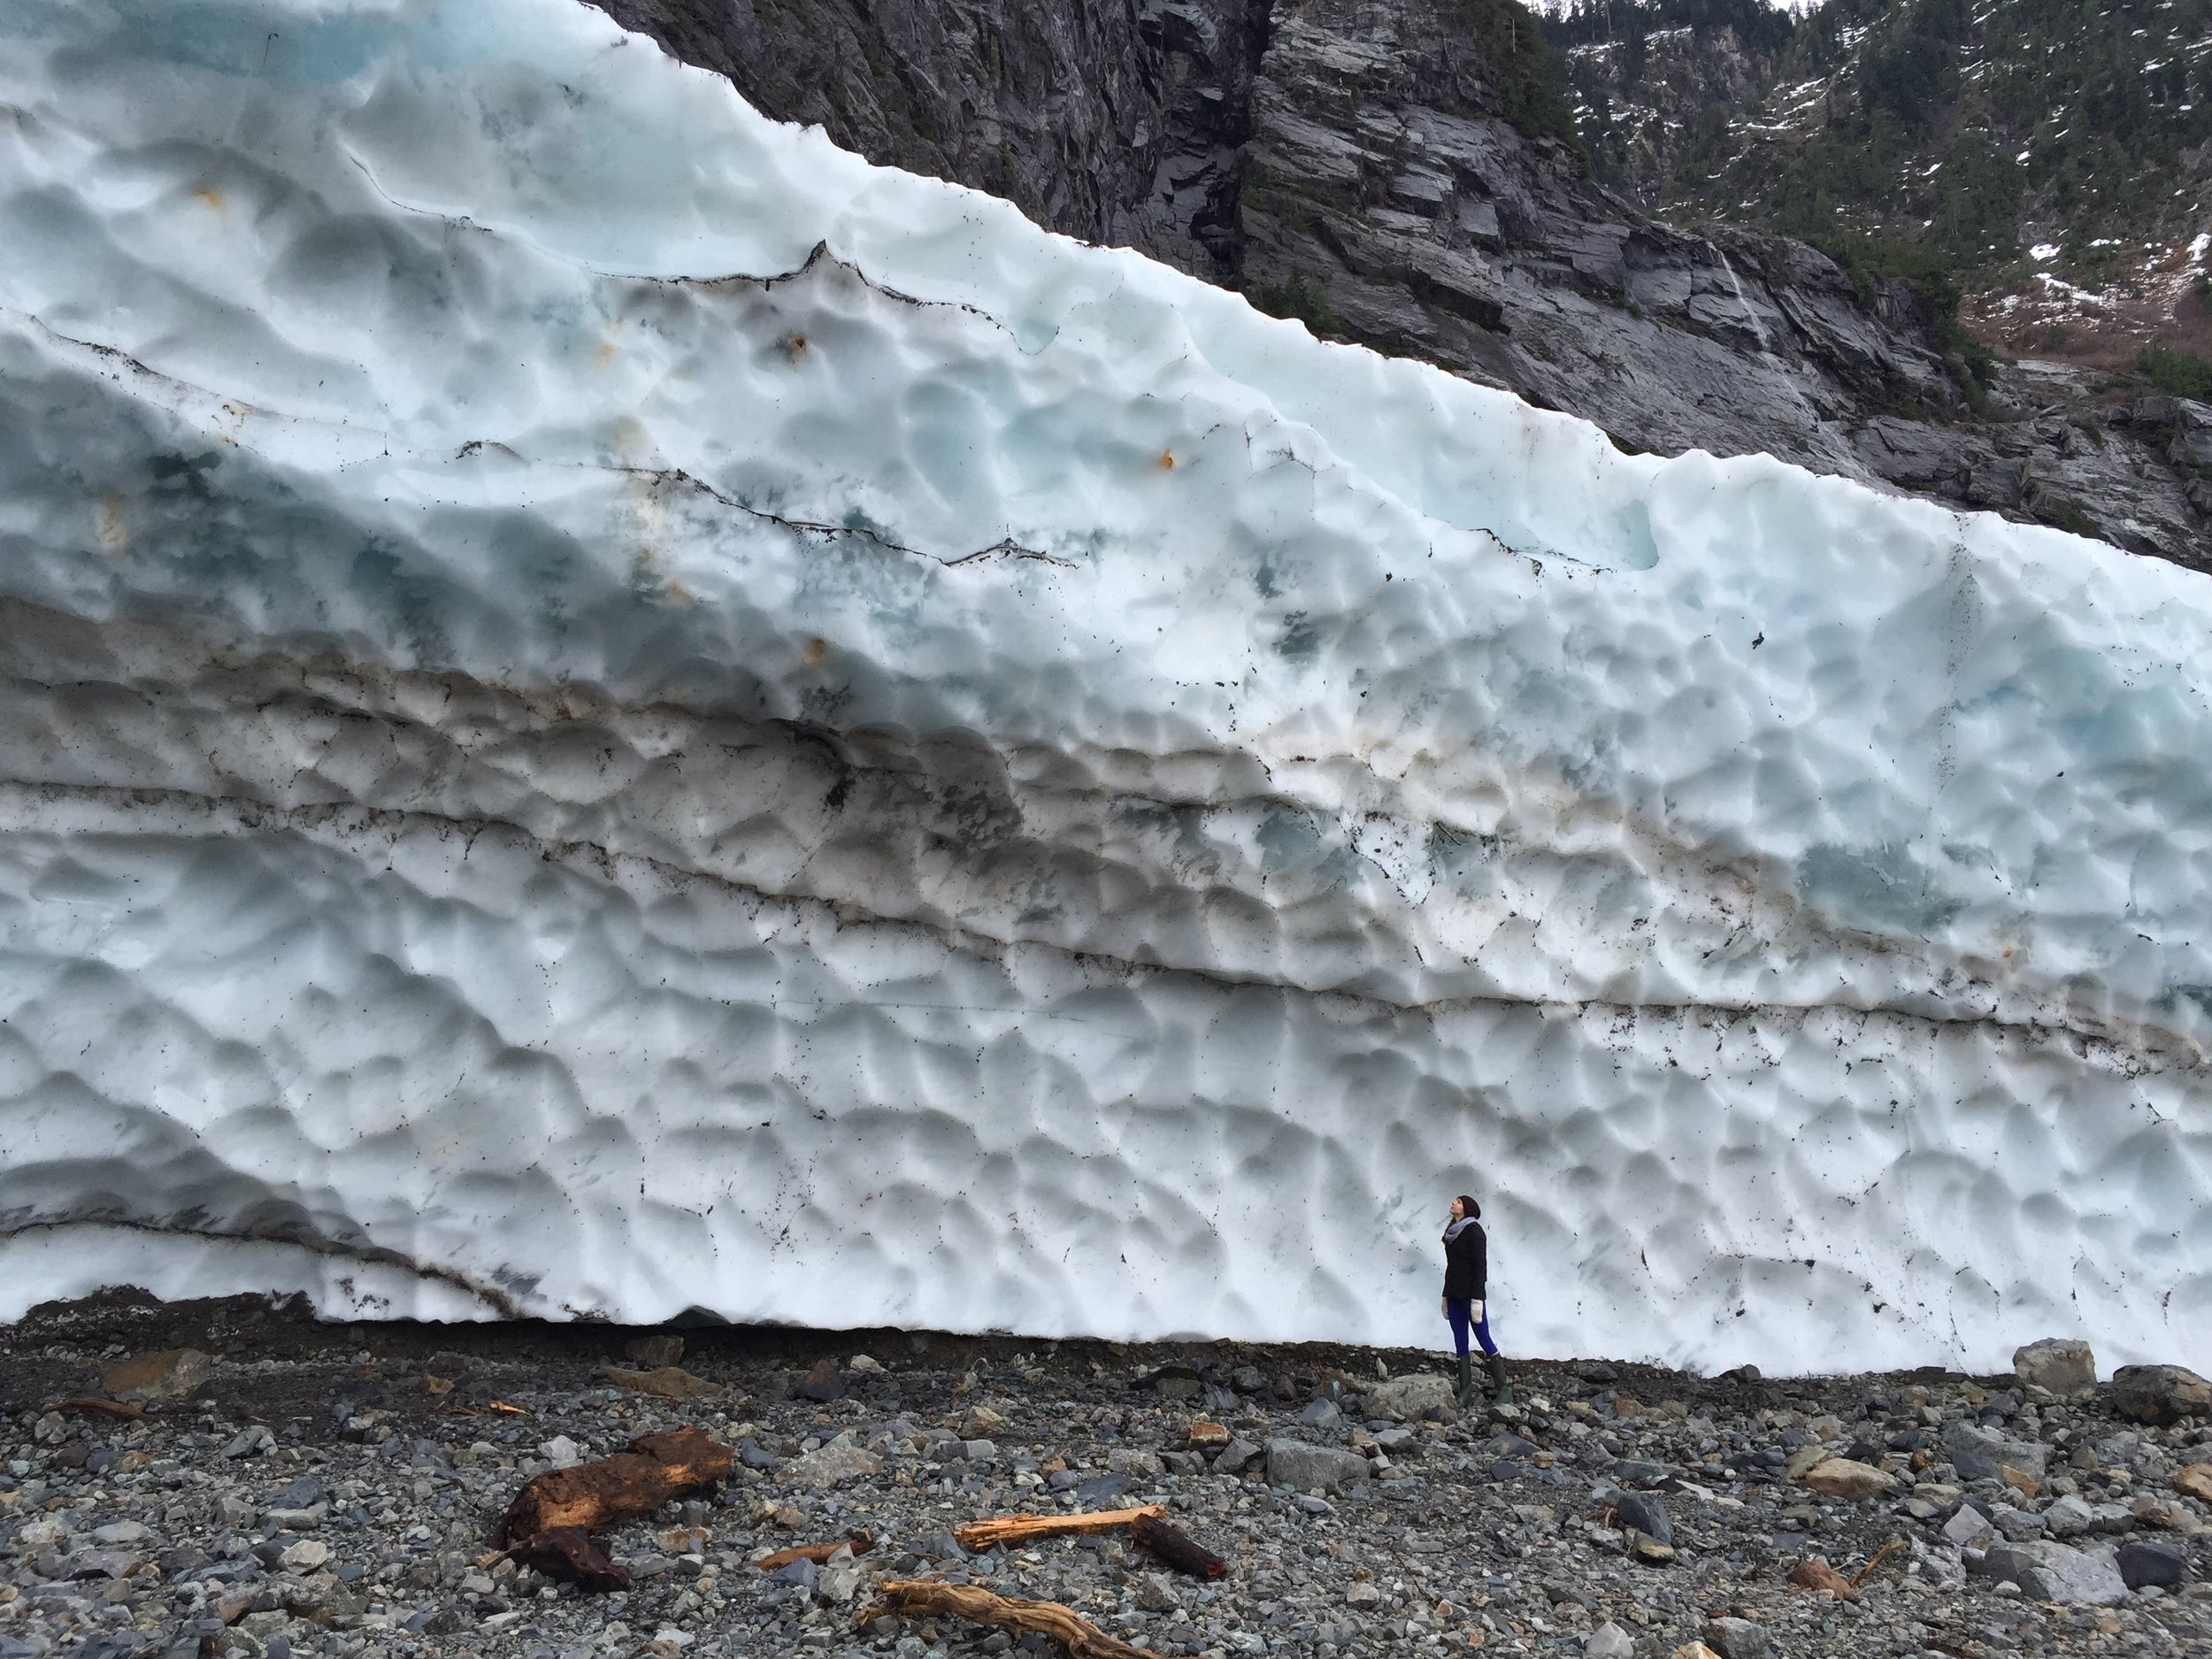 Marveling at the Ice Caves